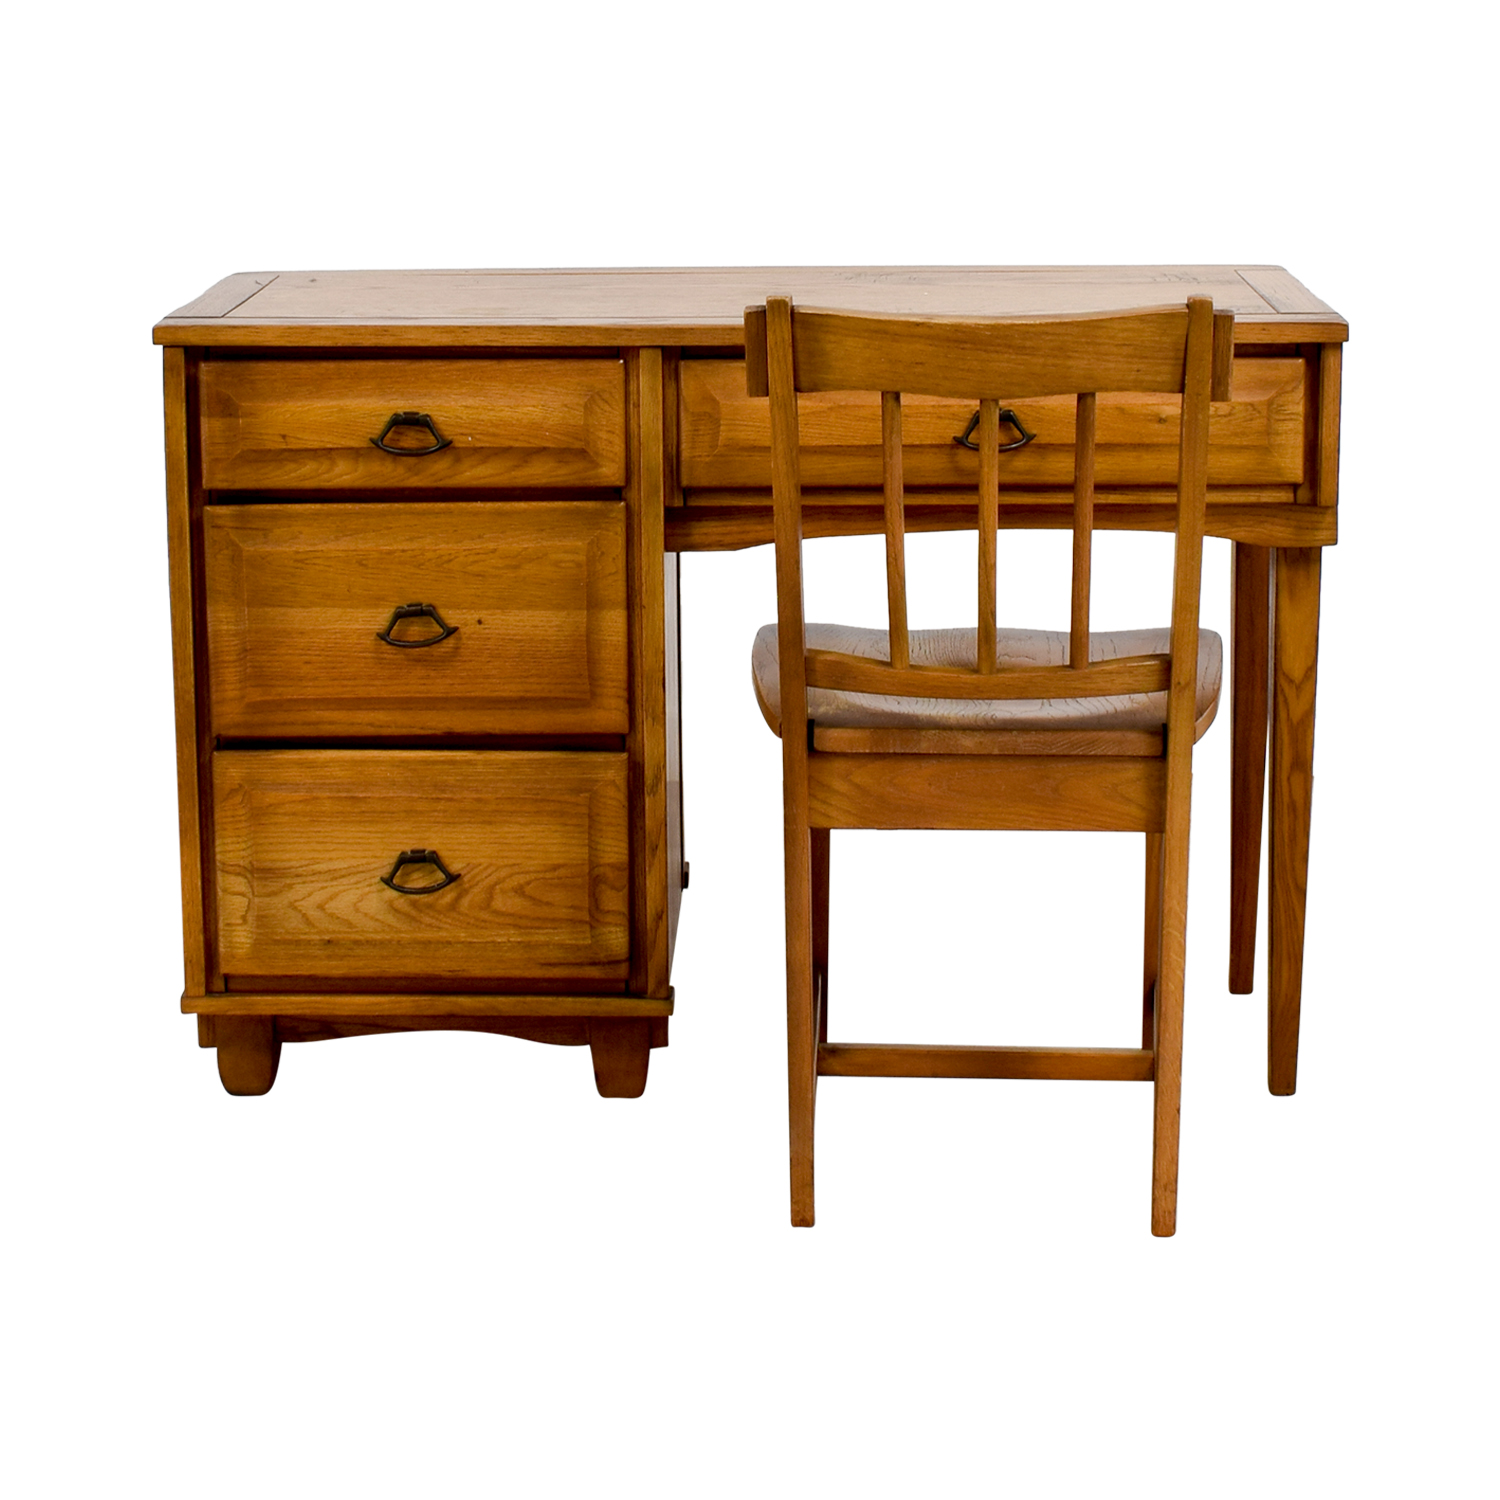 buy Vintage Mid Century Oak Desk with Chair online